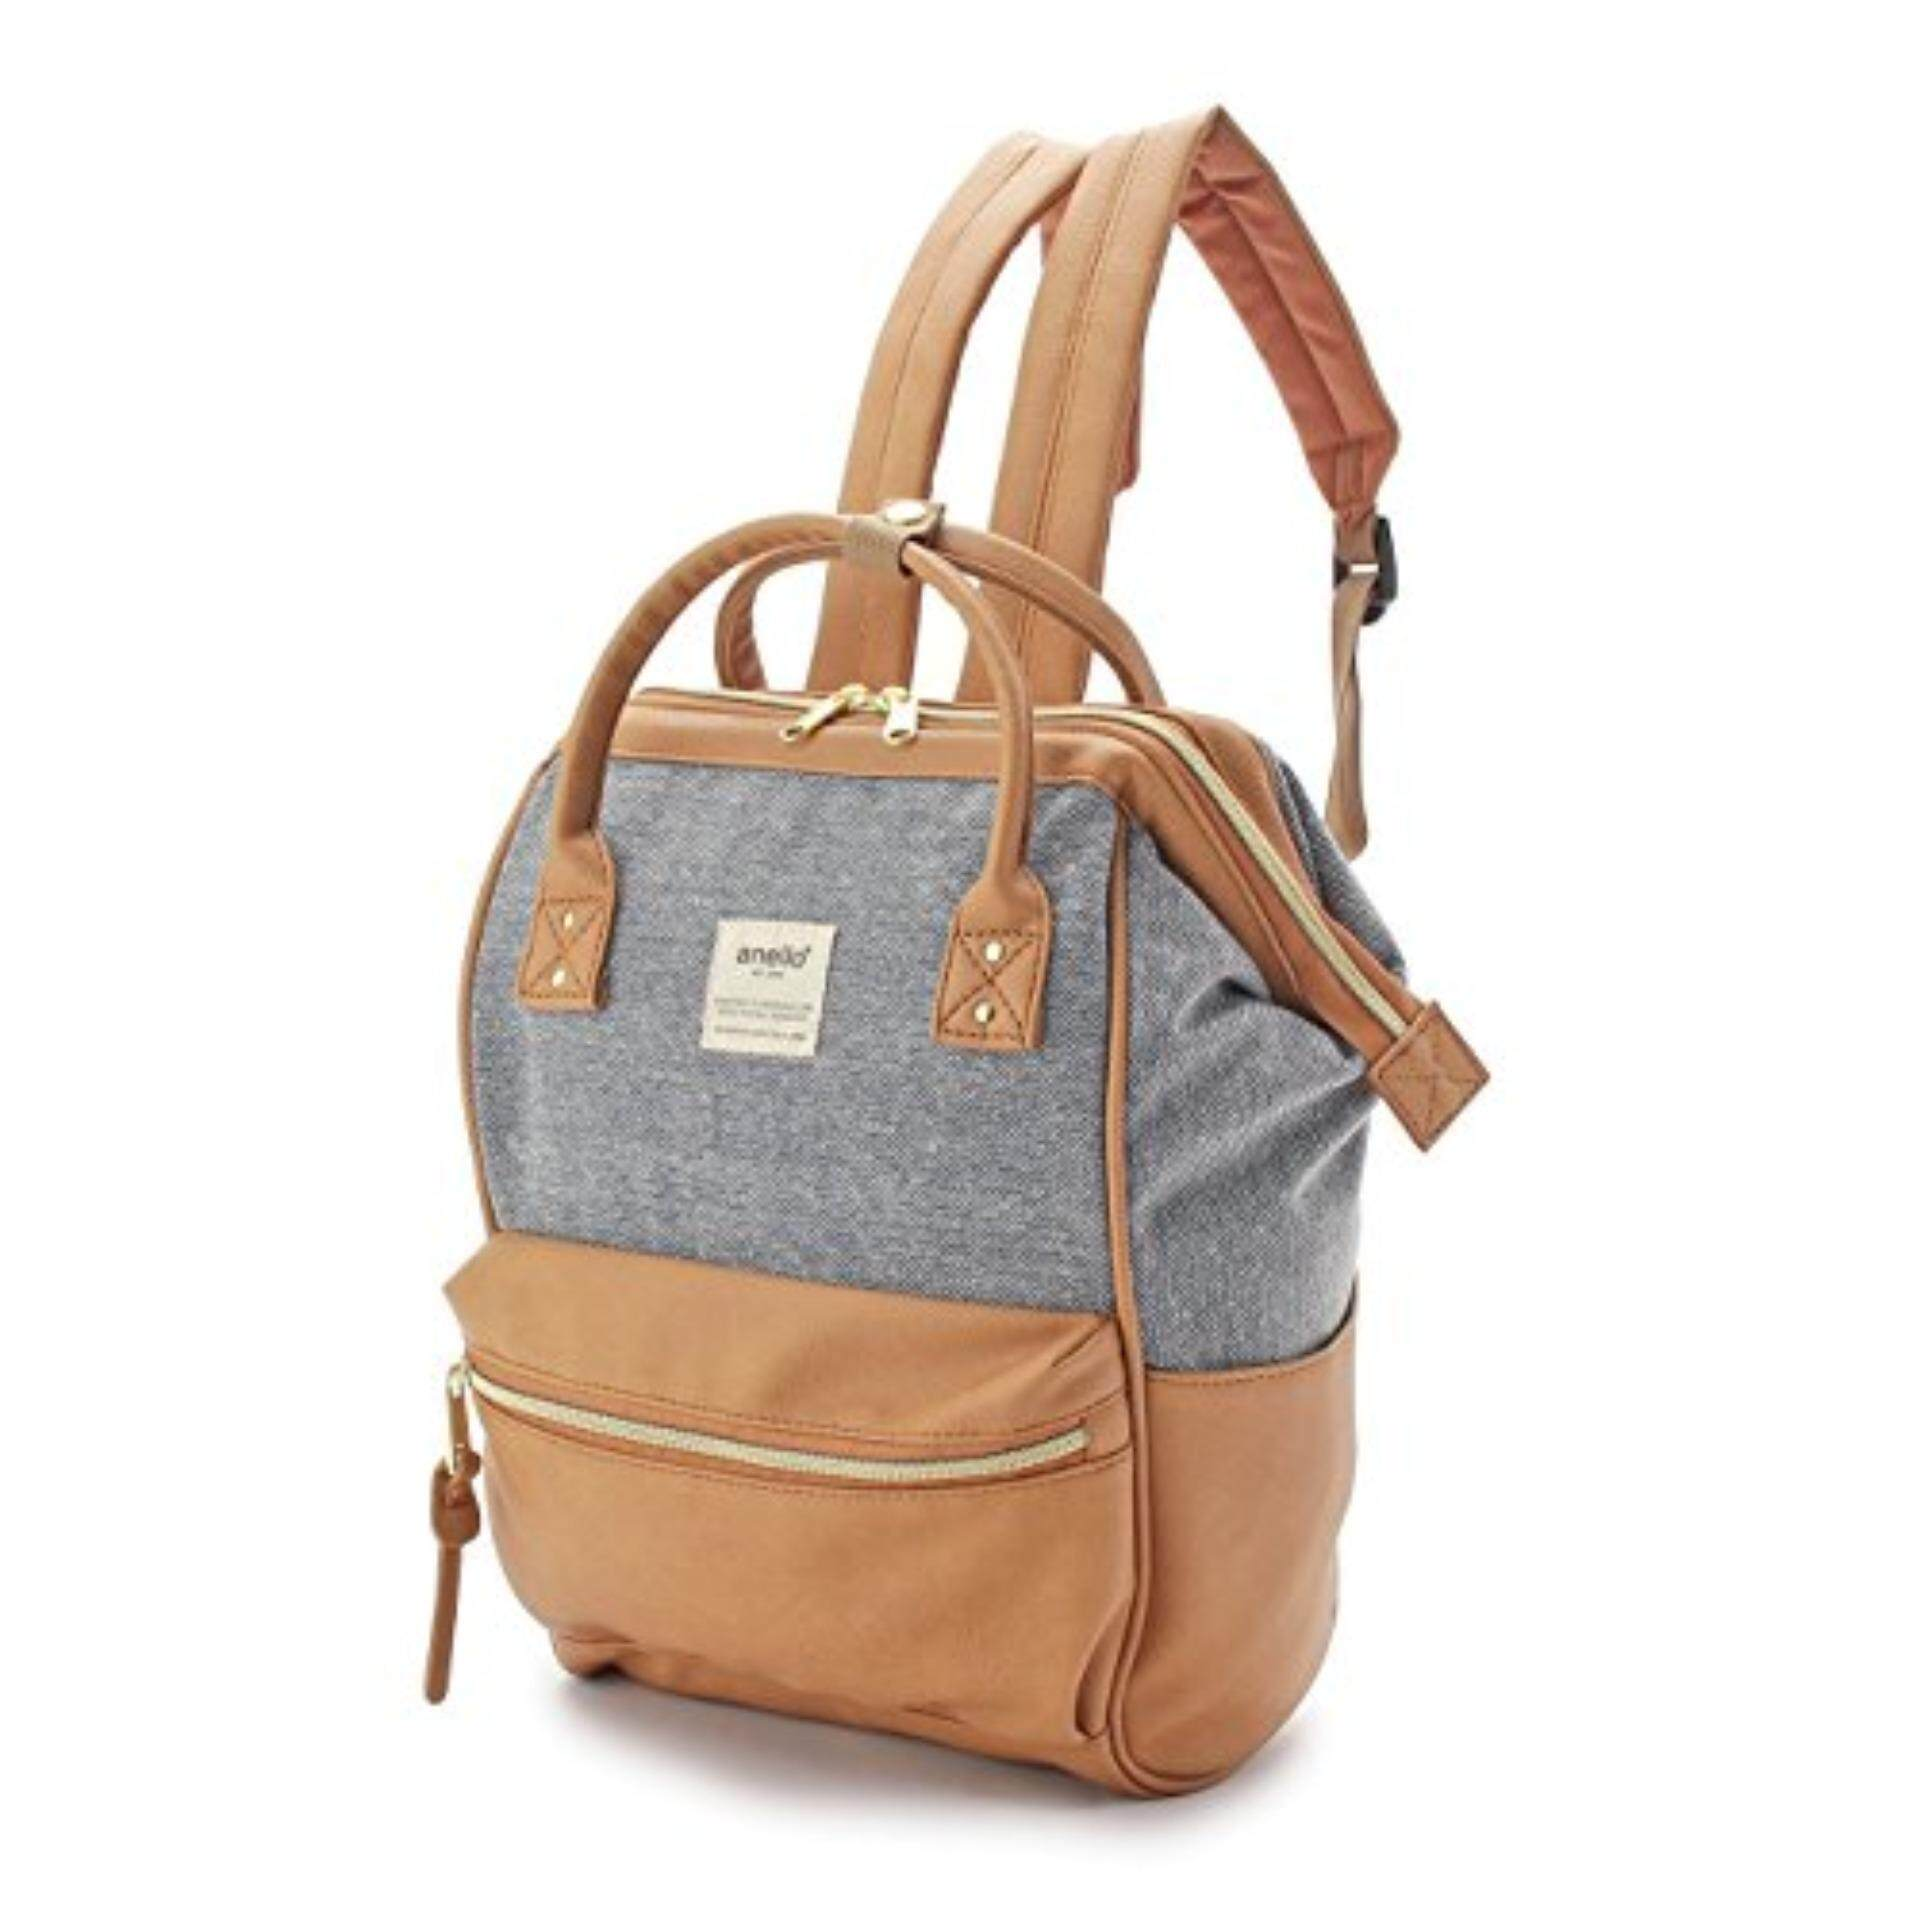 บึงกาฬ กระเป๋า Anello x The Emporium Canvas/PU Mini Camel beige (Mini Size) - Japan Imported 100%